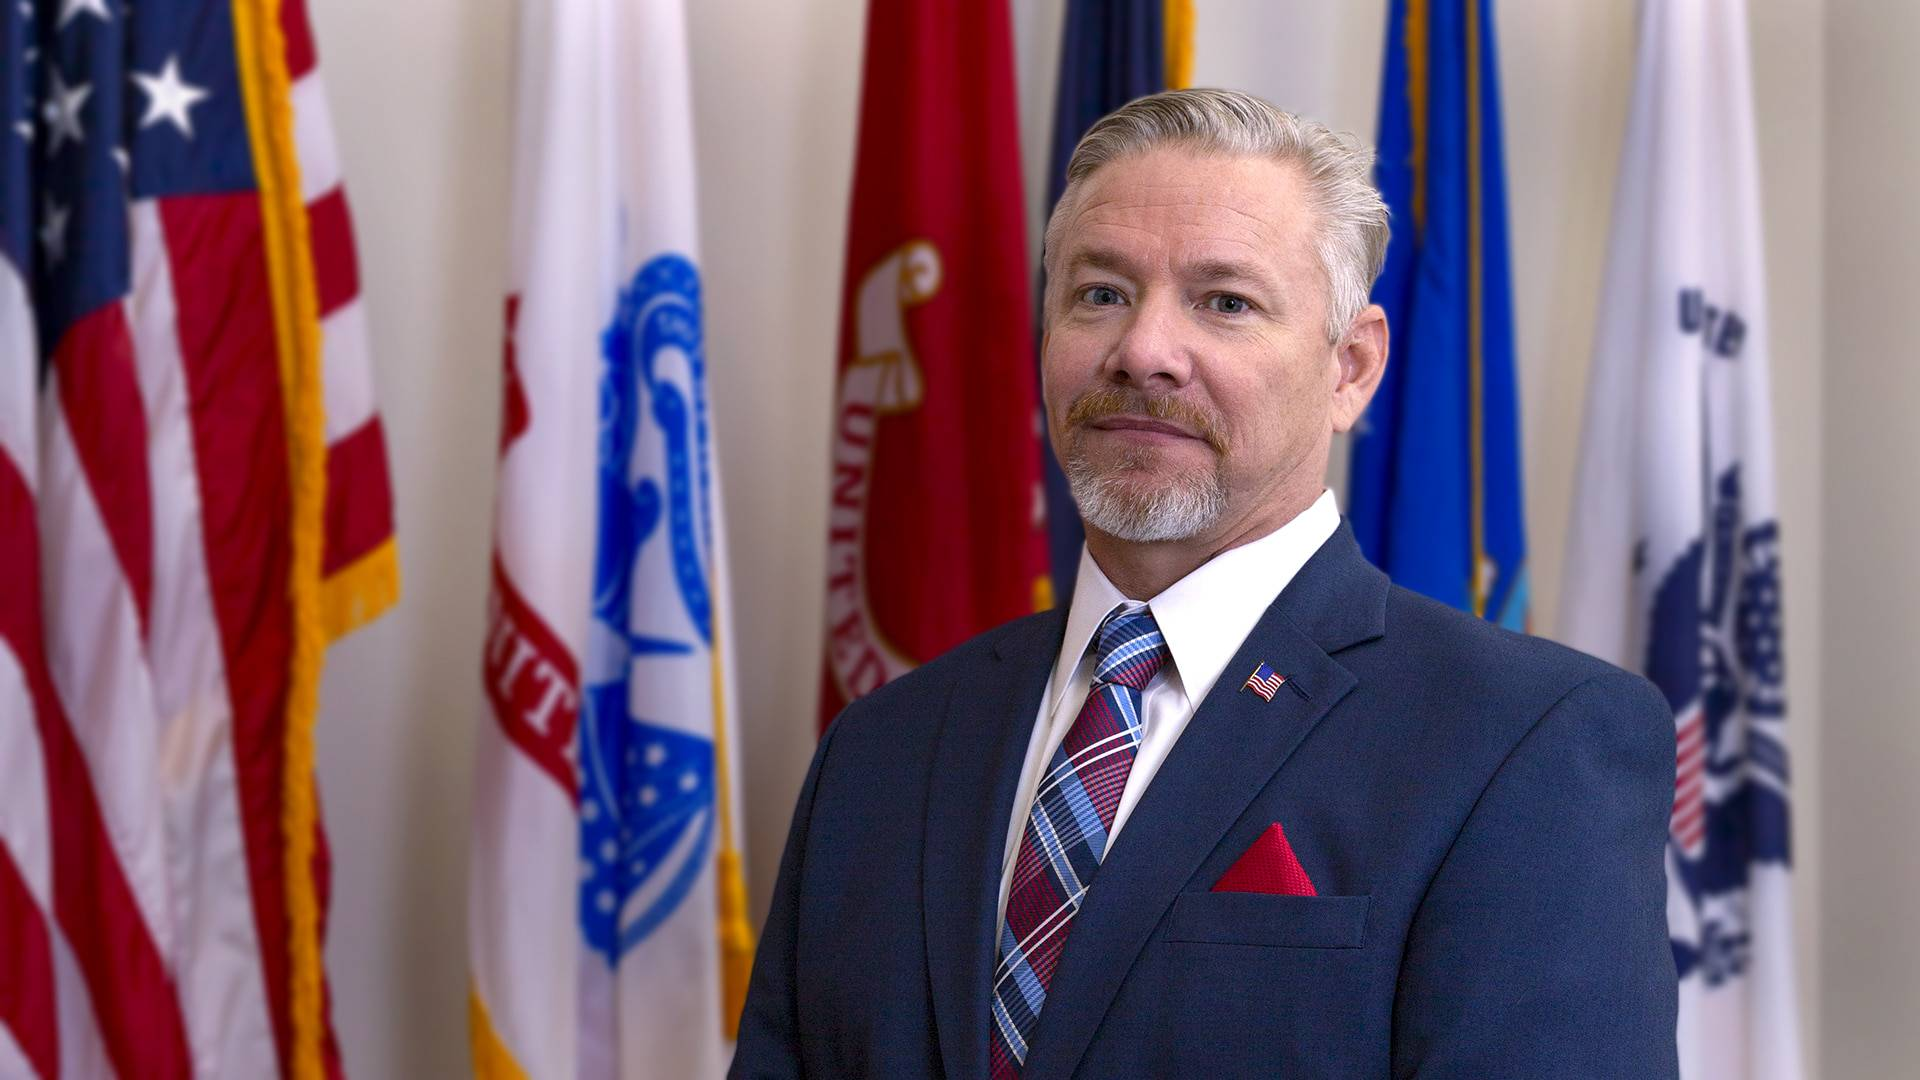 New director supports military-affiliated students and families in college, life goals